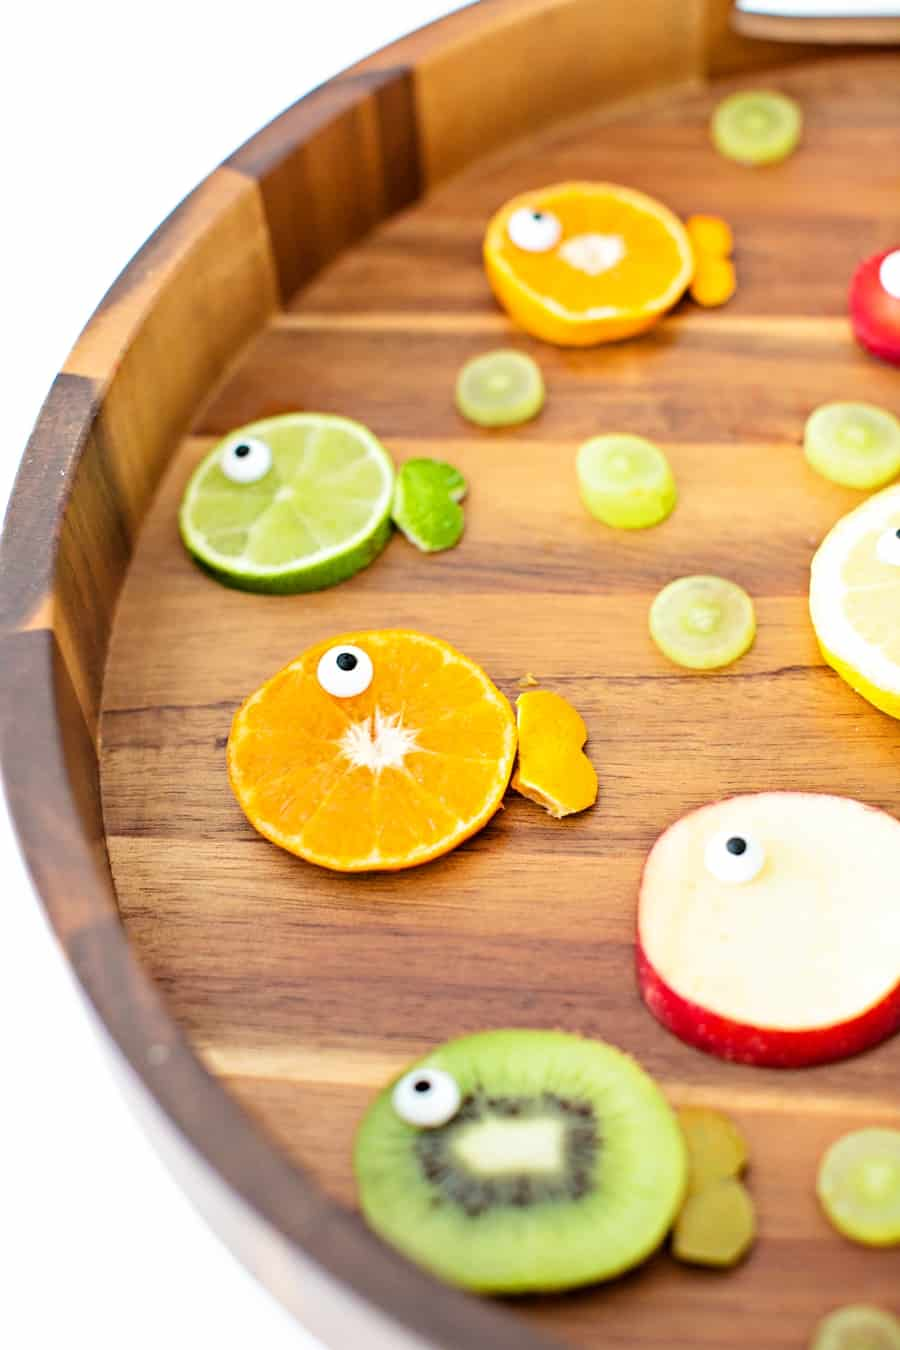 oranges, limes, kiwi and apples cut to resemble fish fruit